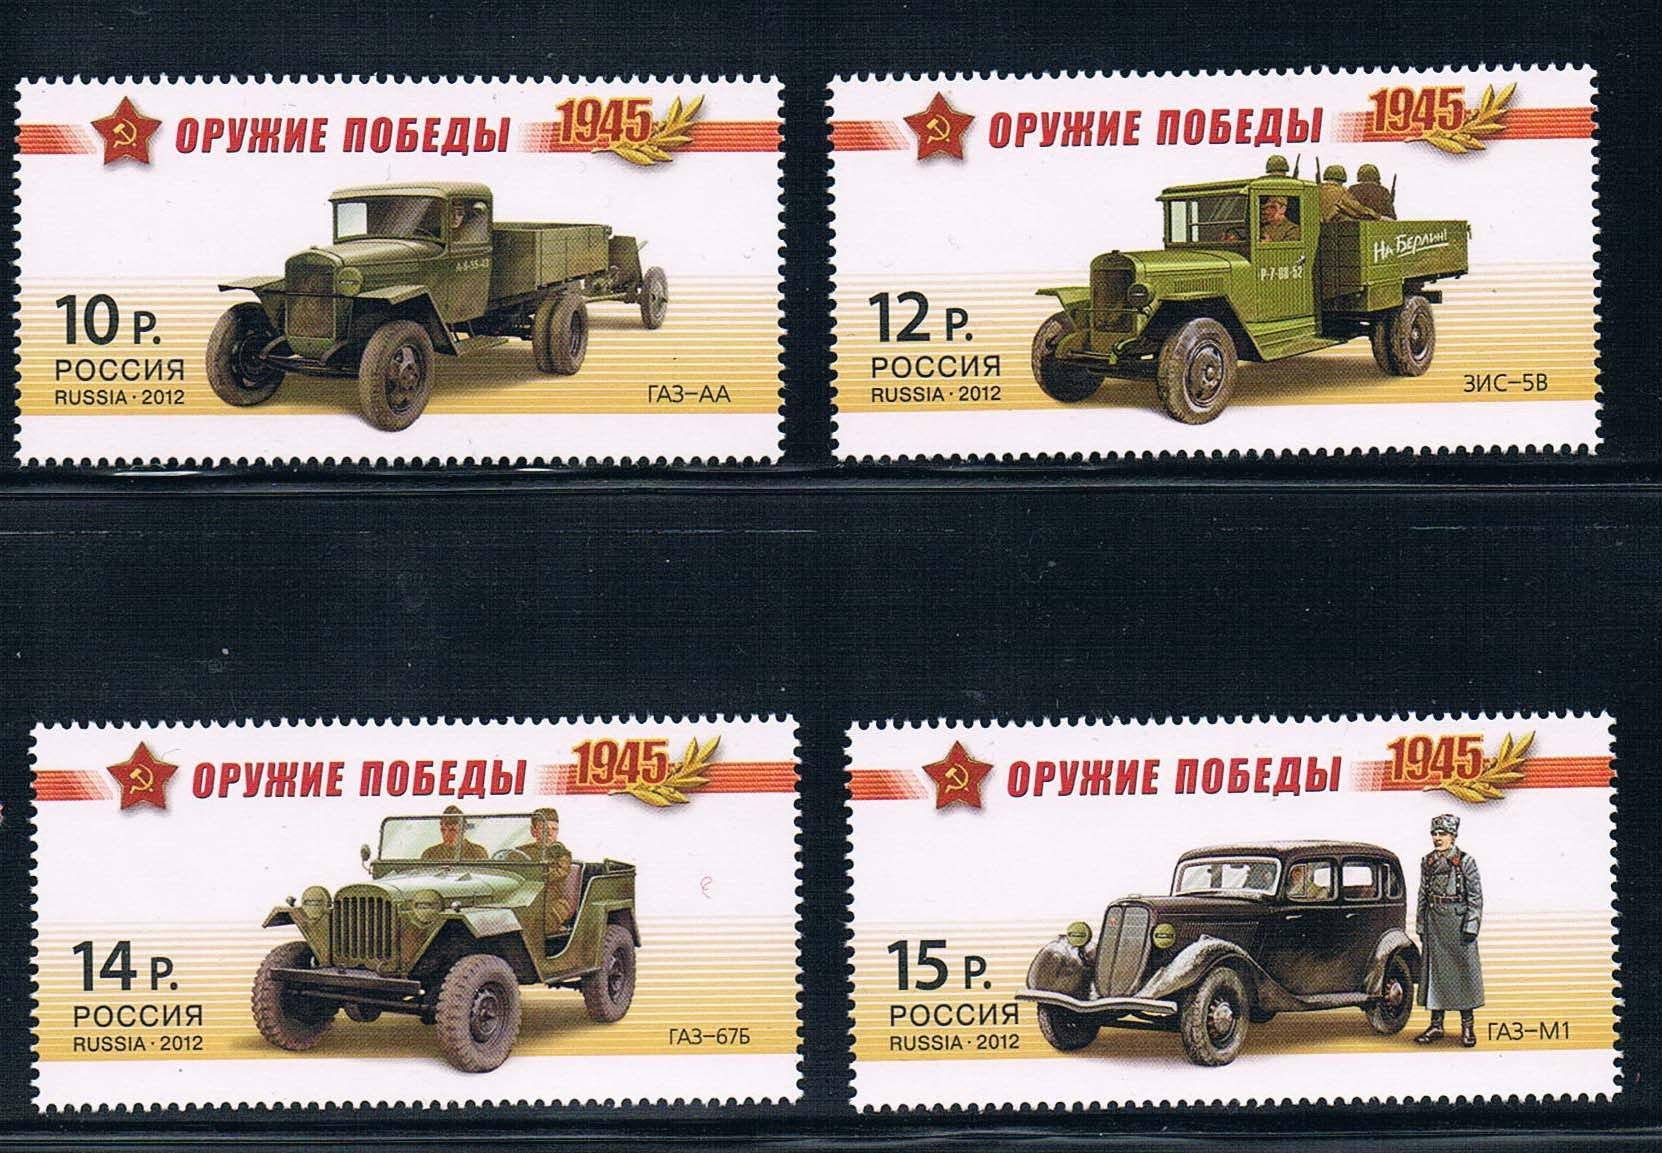 RU1280 2012 Russian weapons of World War II stamps 4 new 0712 car from 2012 ea1420 1ms new 0626 coastal bird stamps